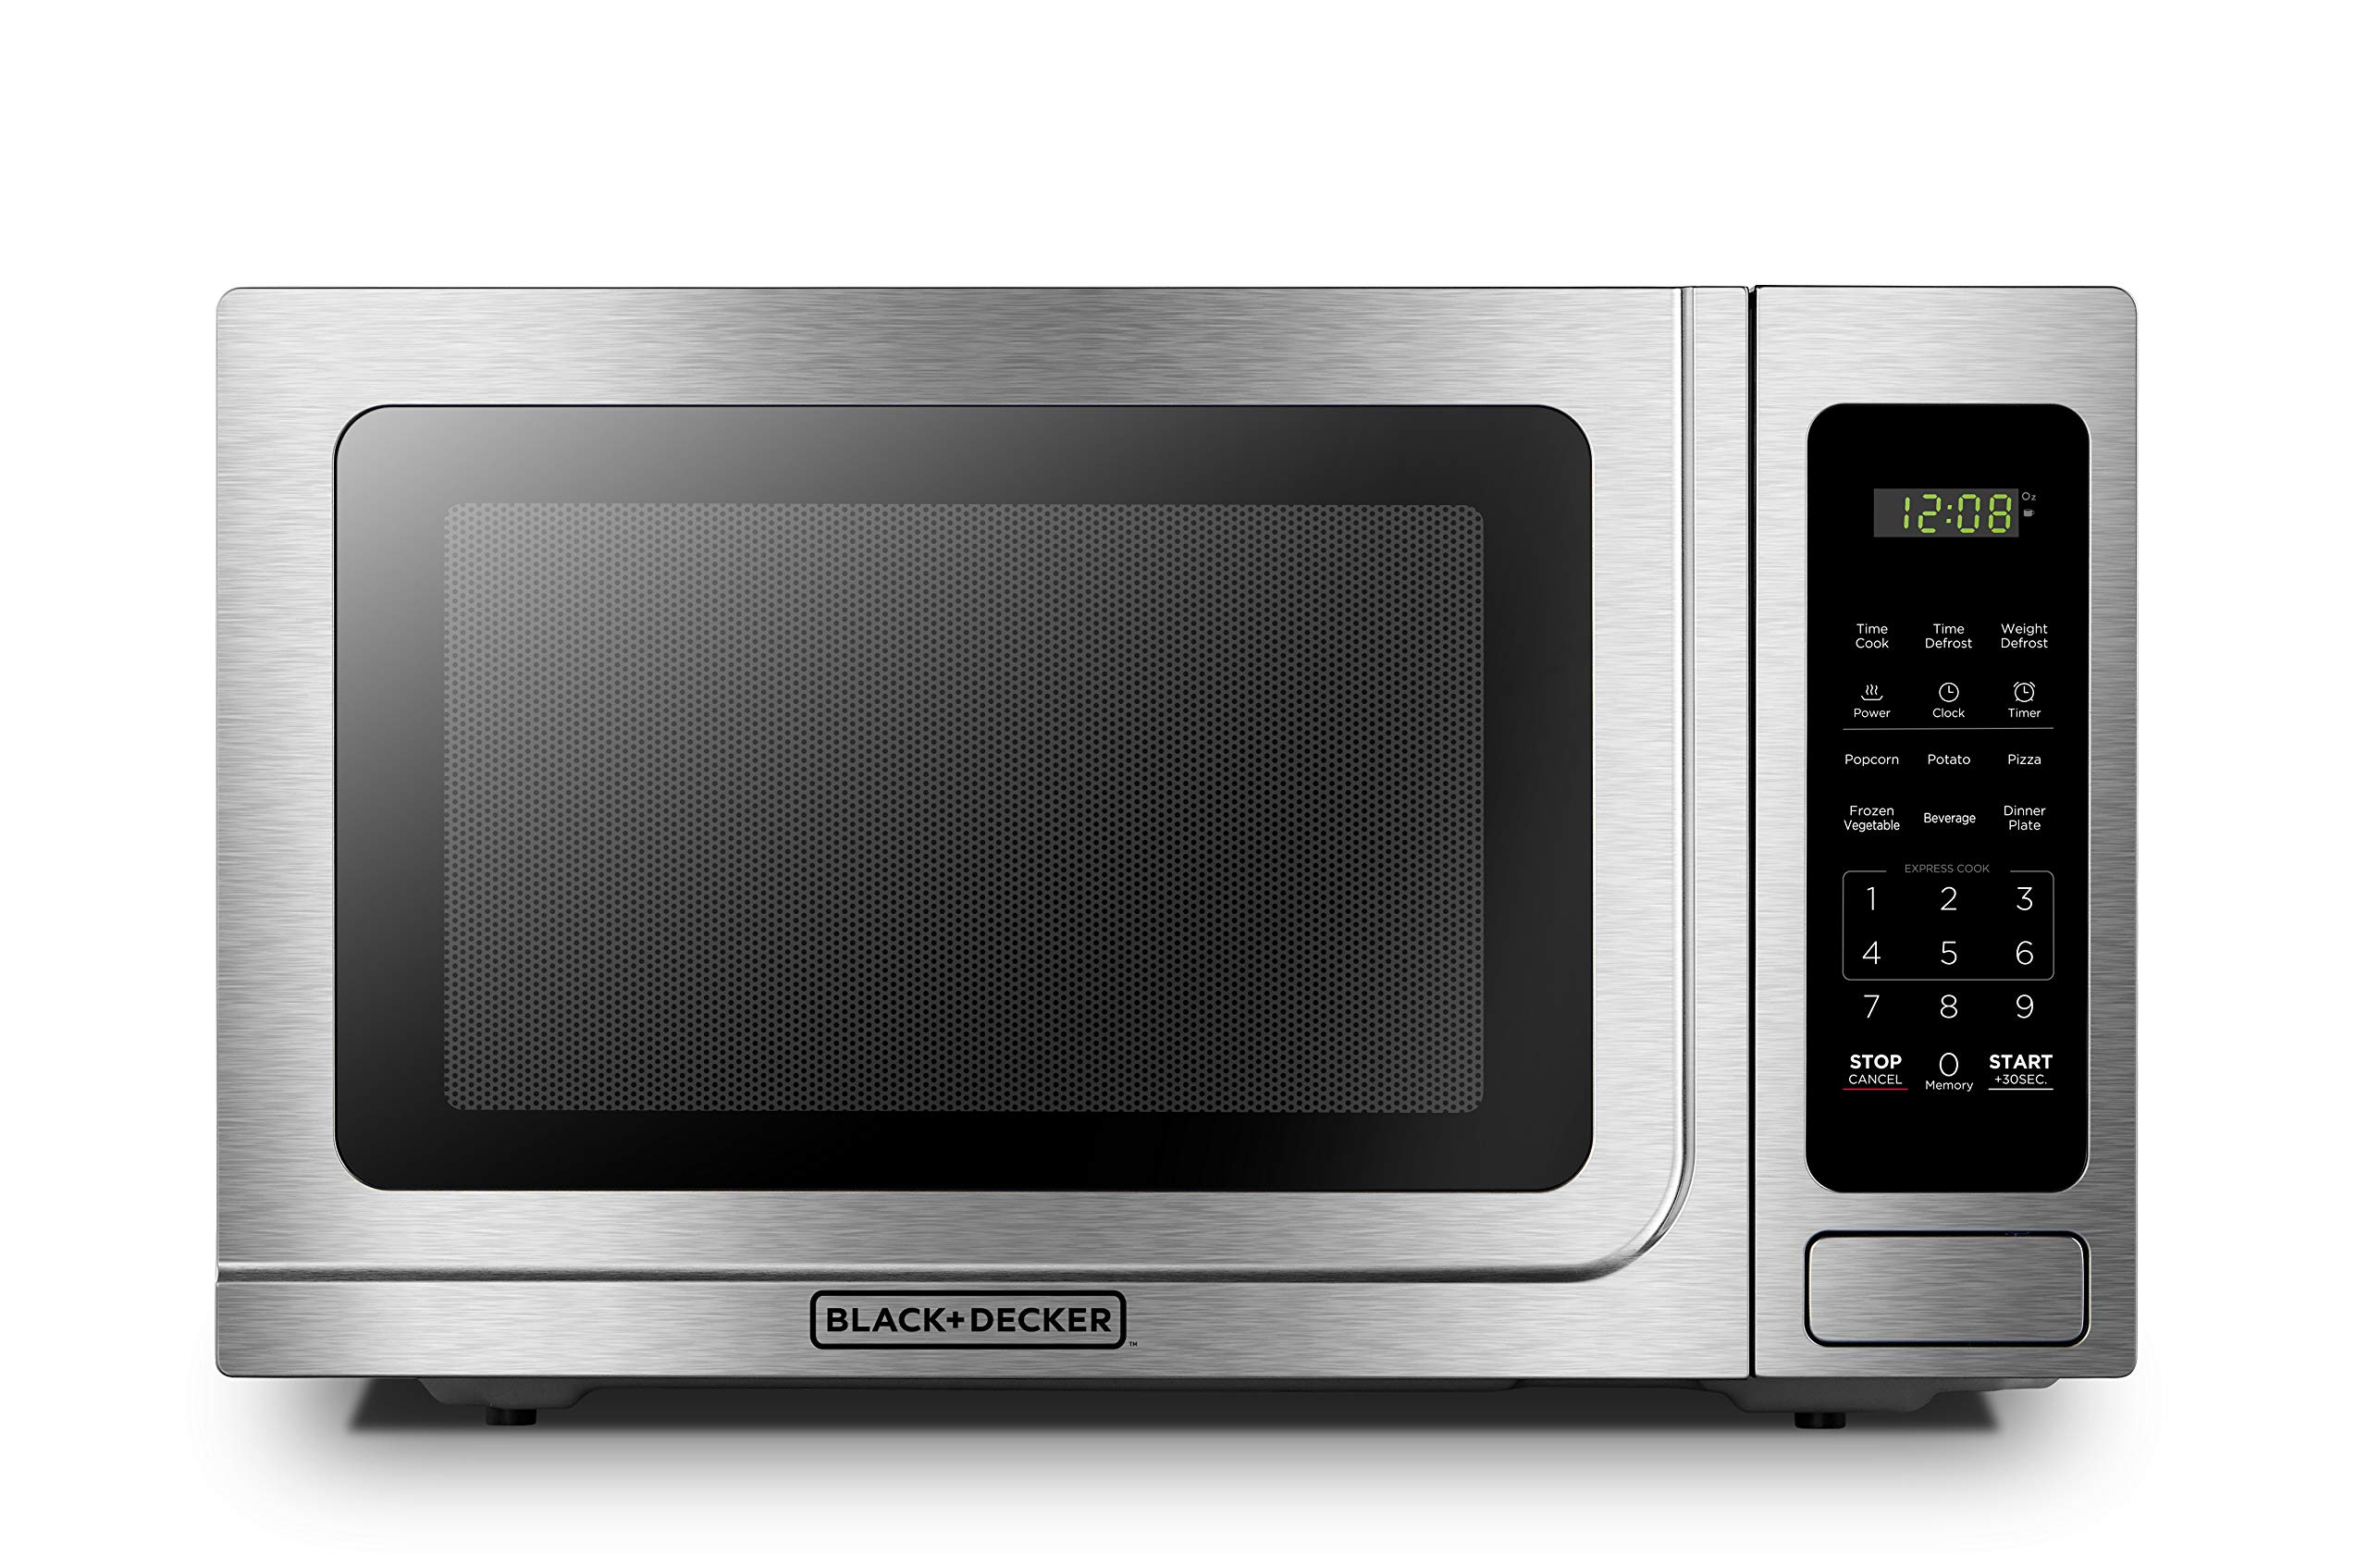 BLACK DECKER EM036AB14 Microwave Push Button